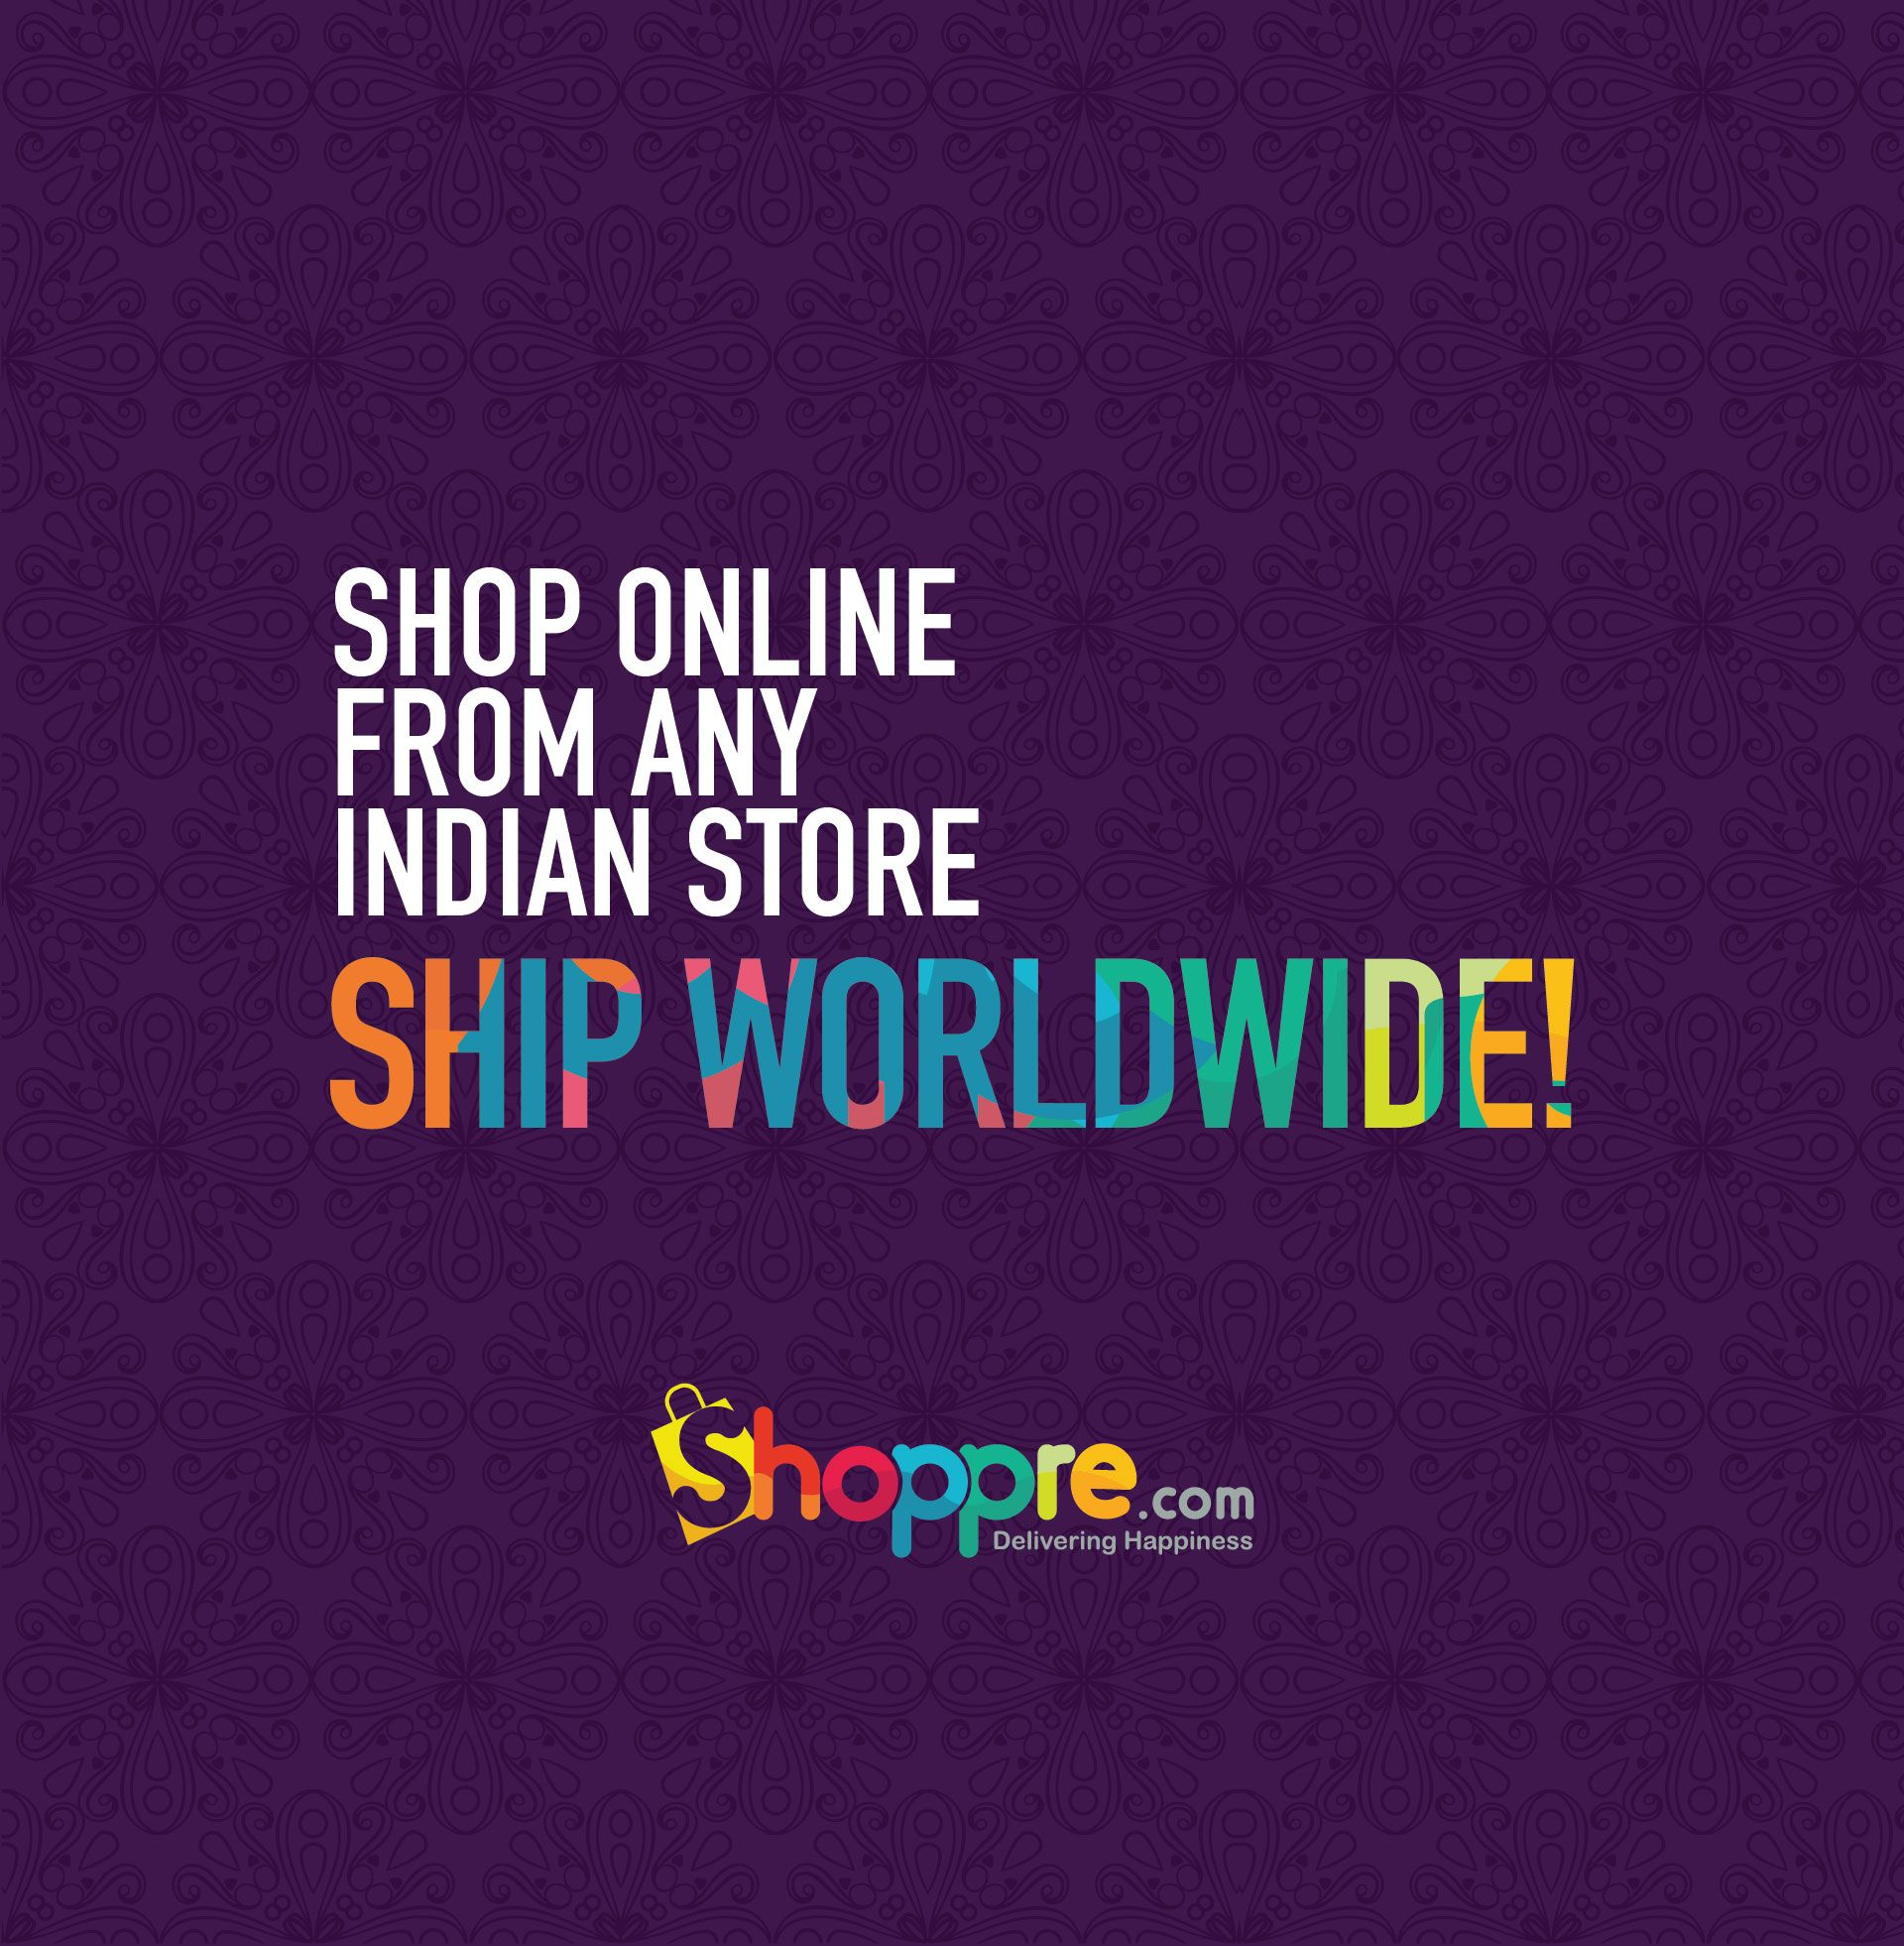 Shopper Shipping Services. #shop #ship #india | Shopping, Ship, Worldwide